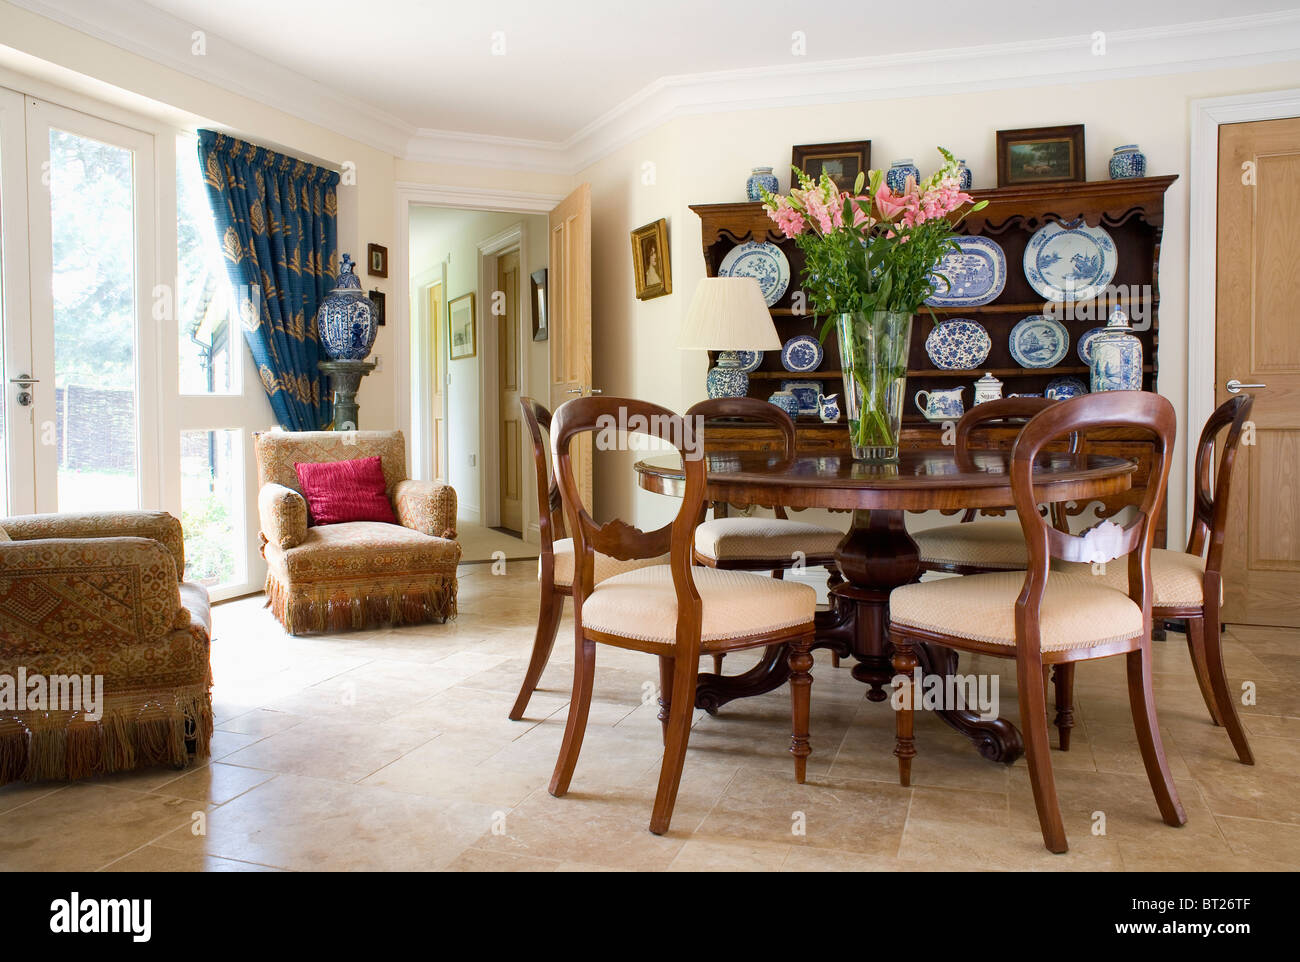 Antique Circular Table With Antique Balloon Back Chairs In Dining Room With  Limestone Flooring